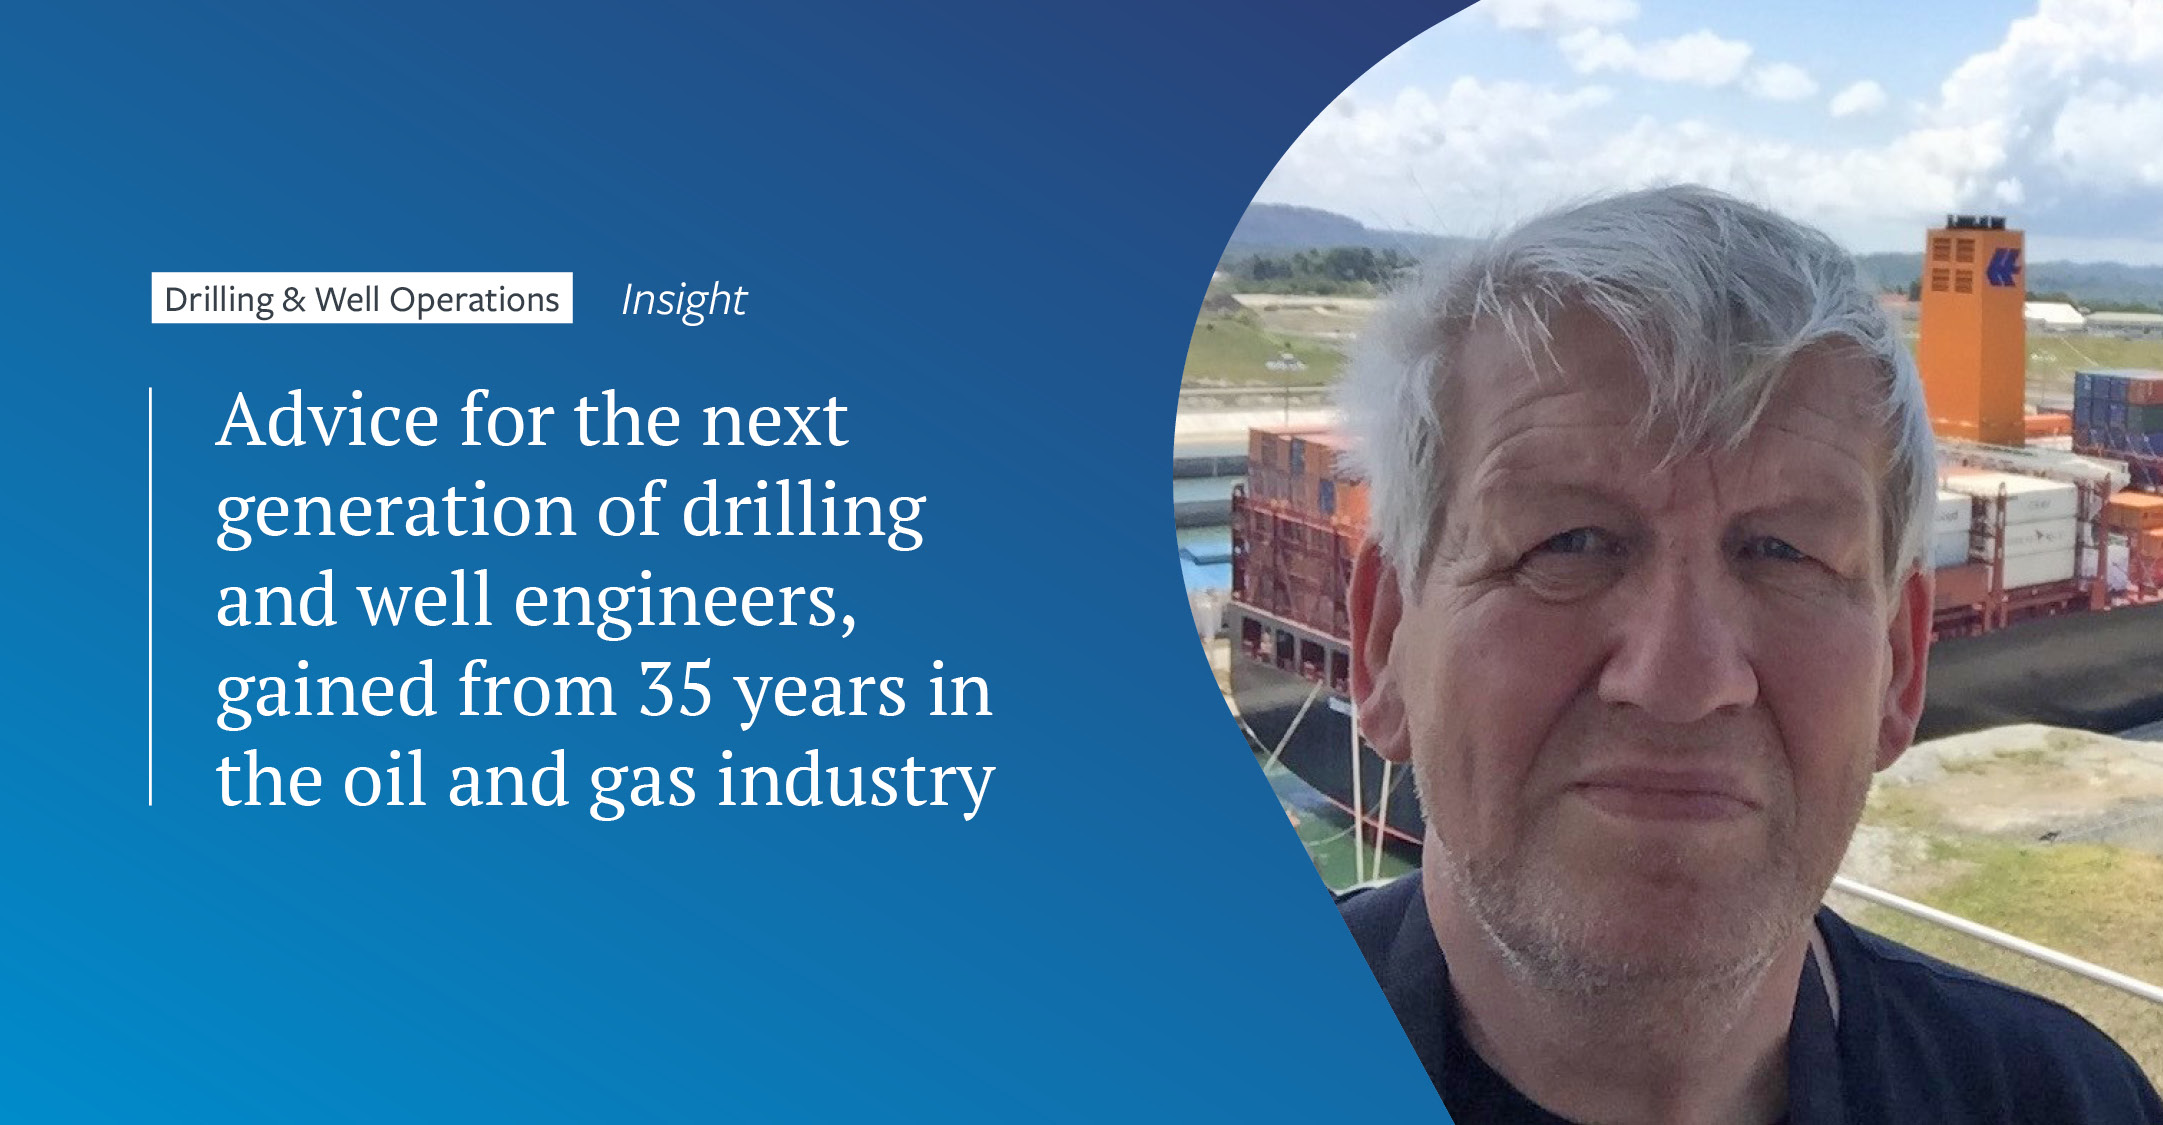 Advice for the next generation of drilling and well engineers, gained from 35 years in the oil and gas industry